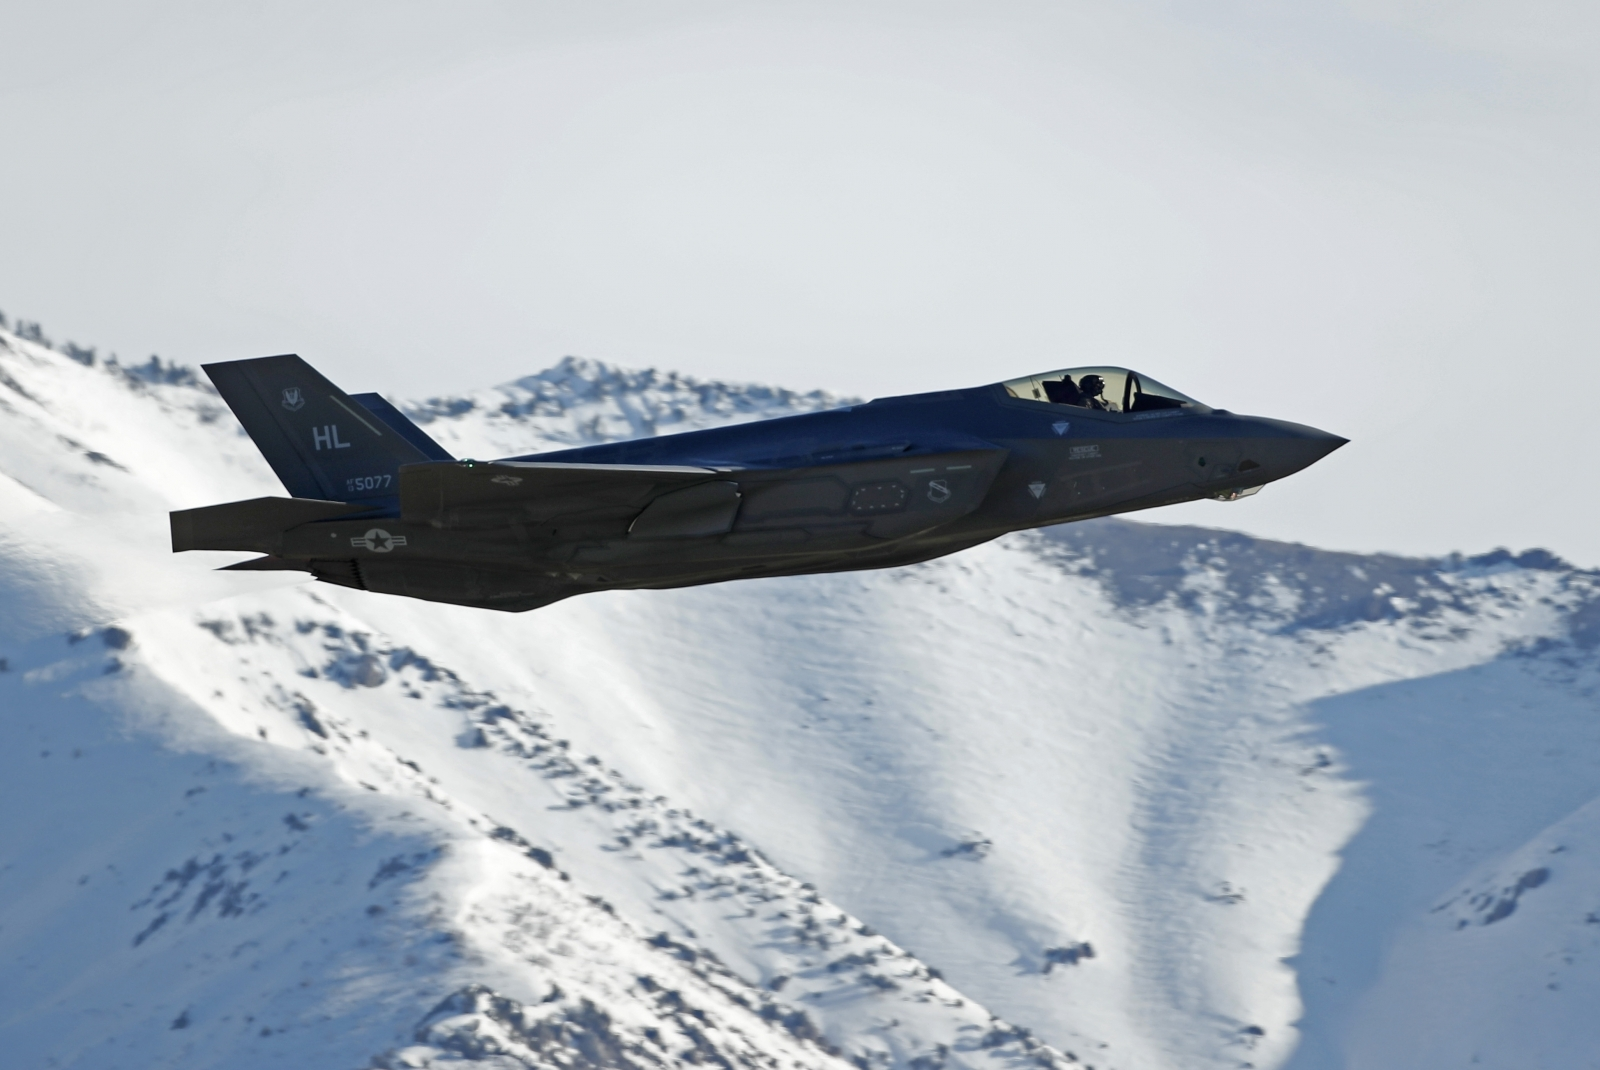 Handy Laden How The F-35 Joint Strike Fighter Can Be Used To Track And